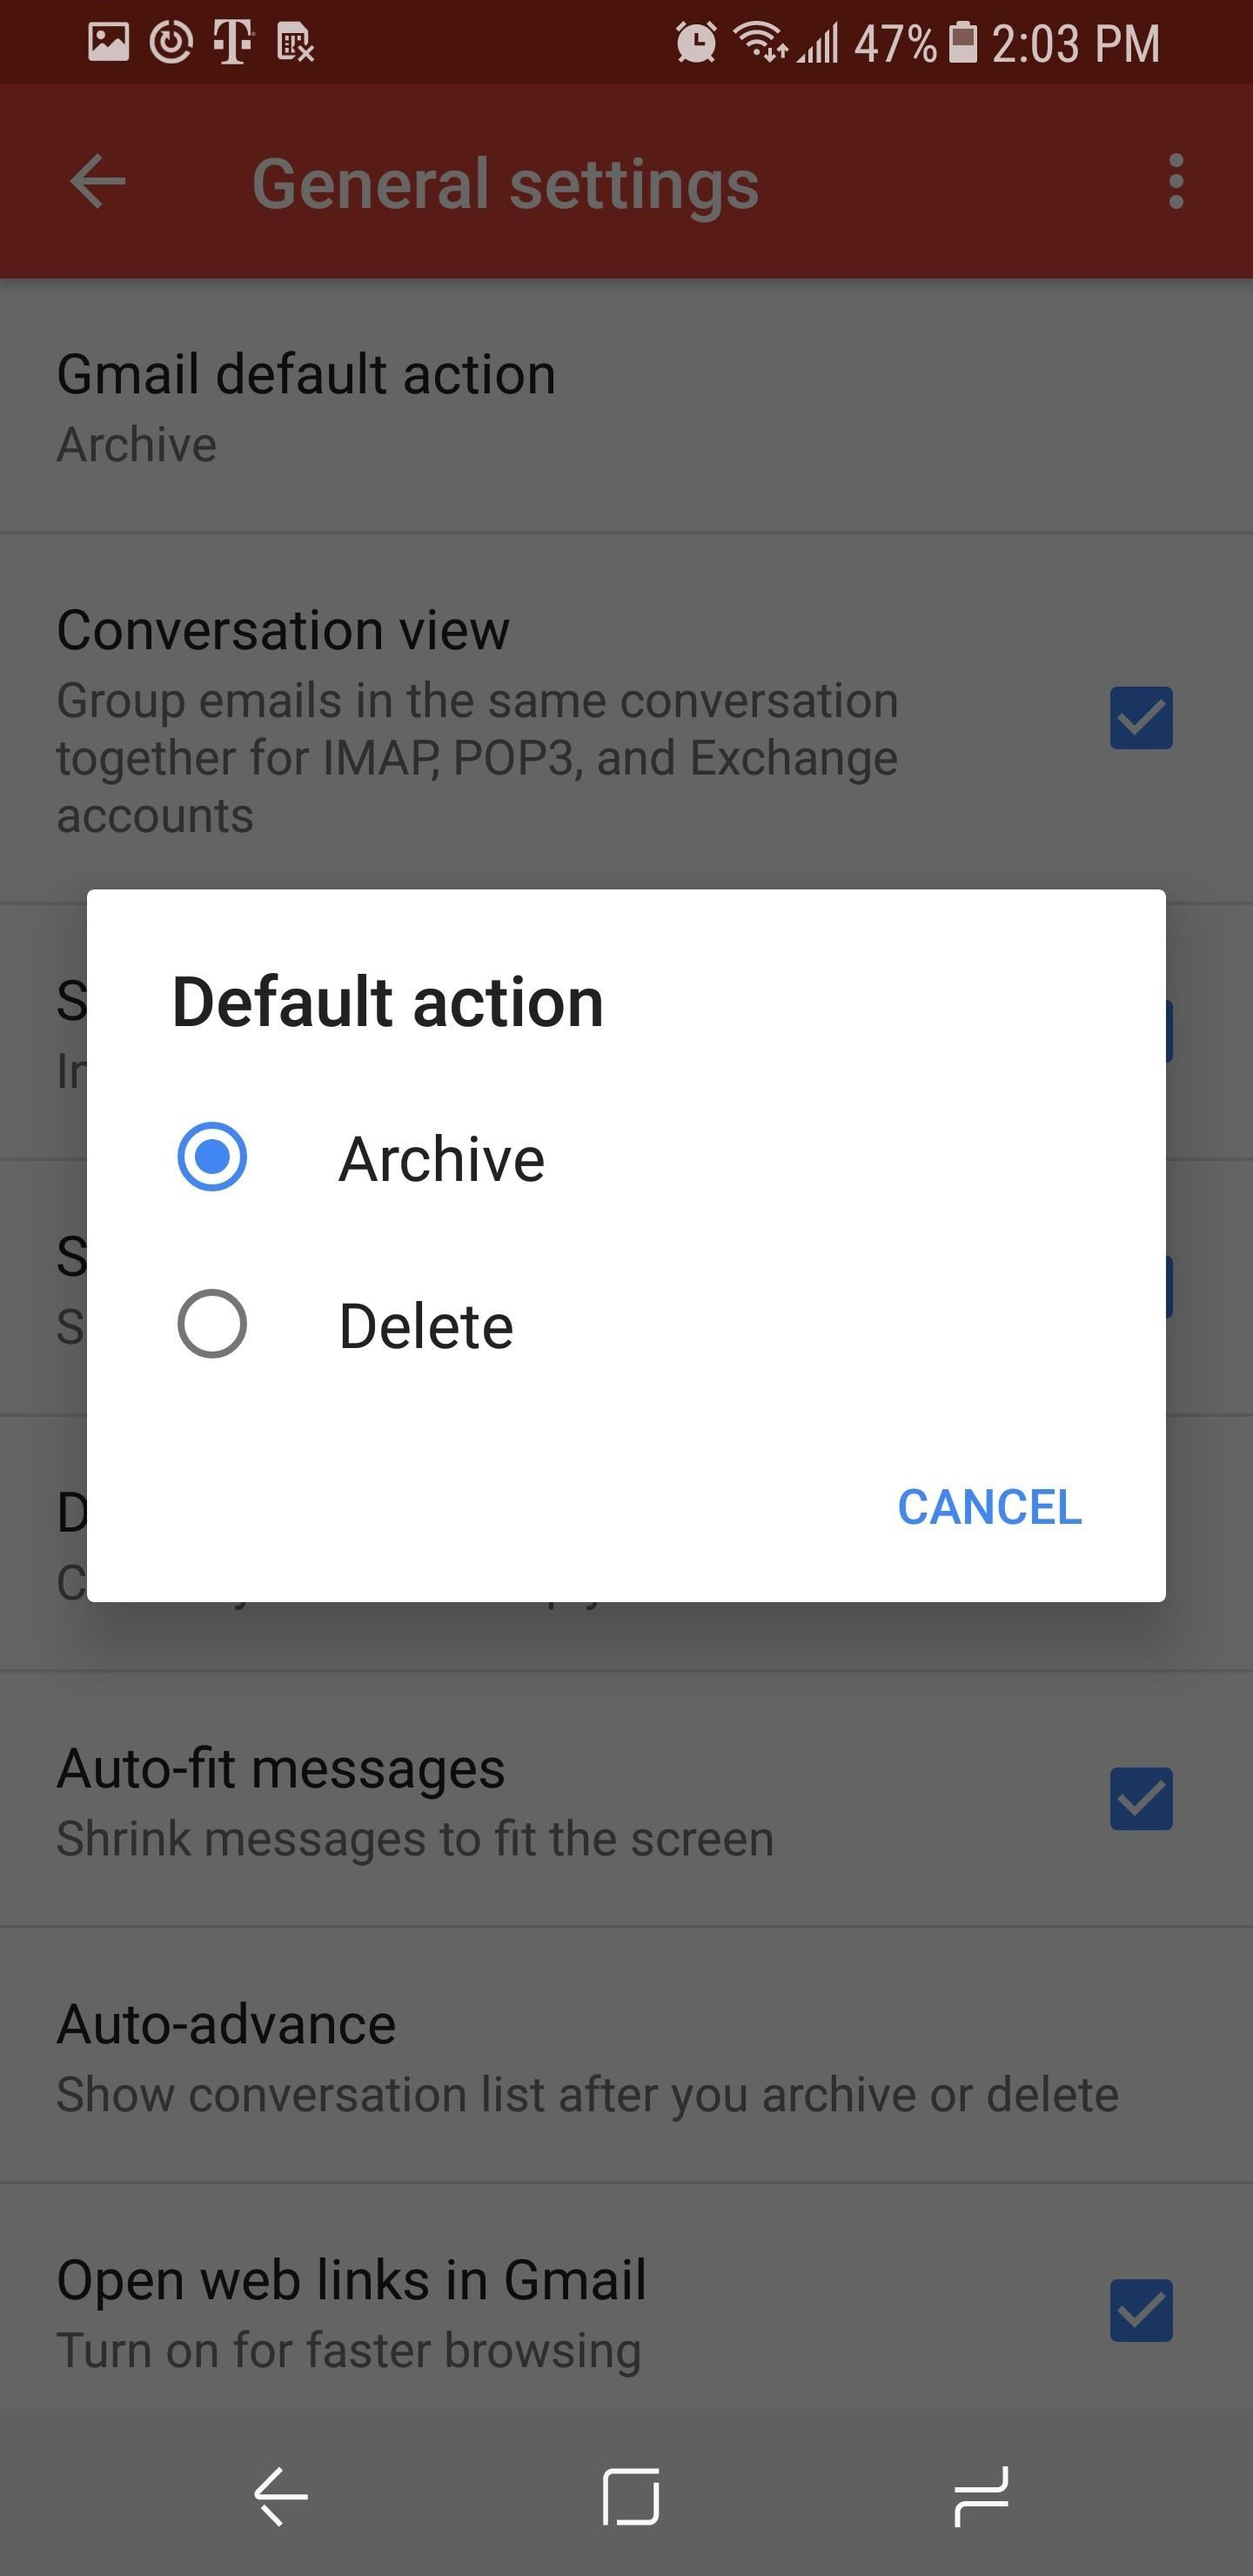 Gmail 101: How to Delete or Archive Emails with One Swipe